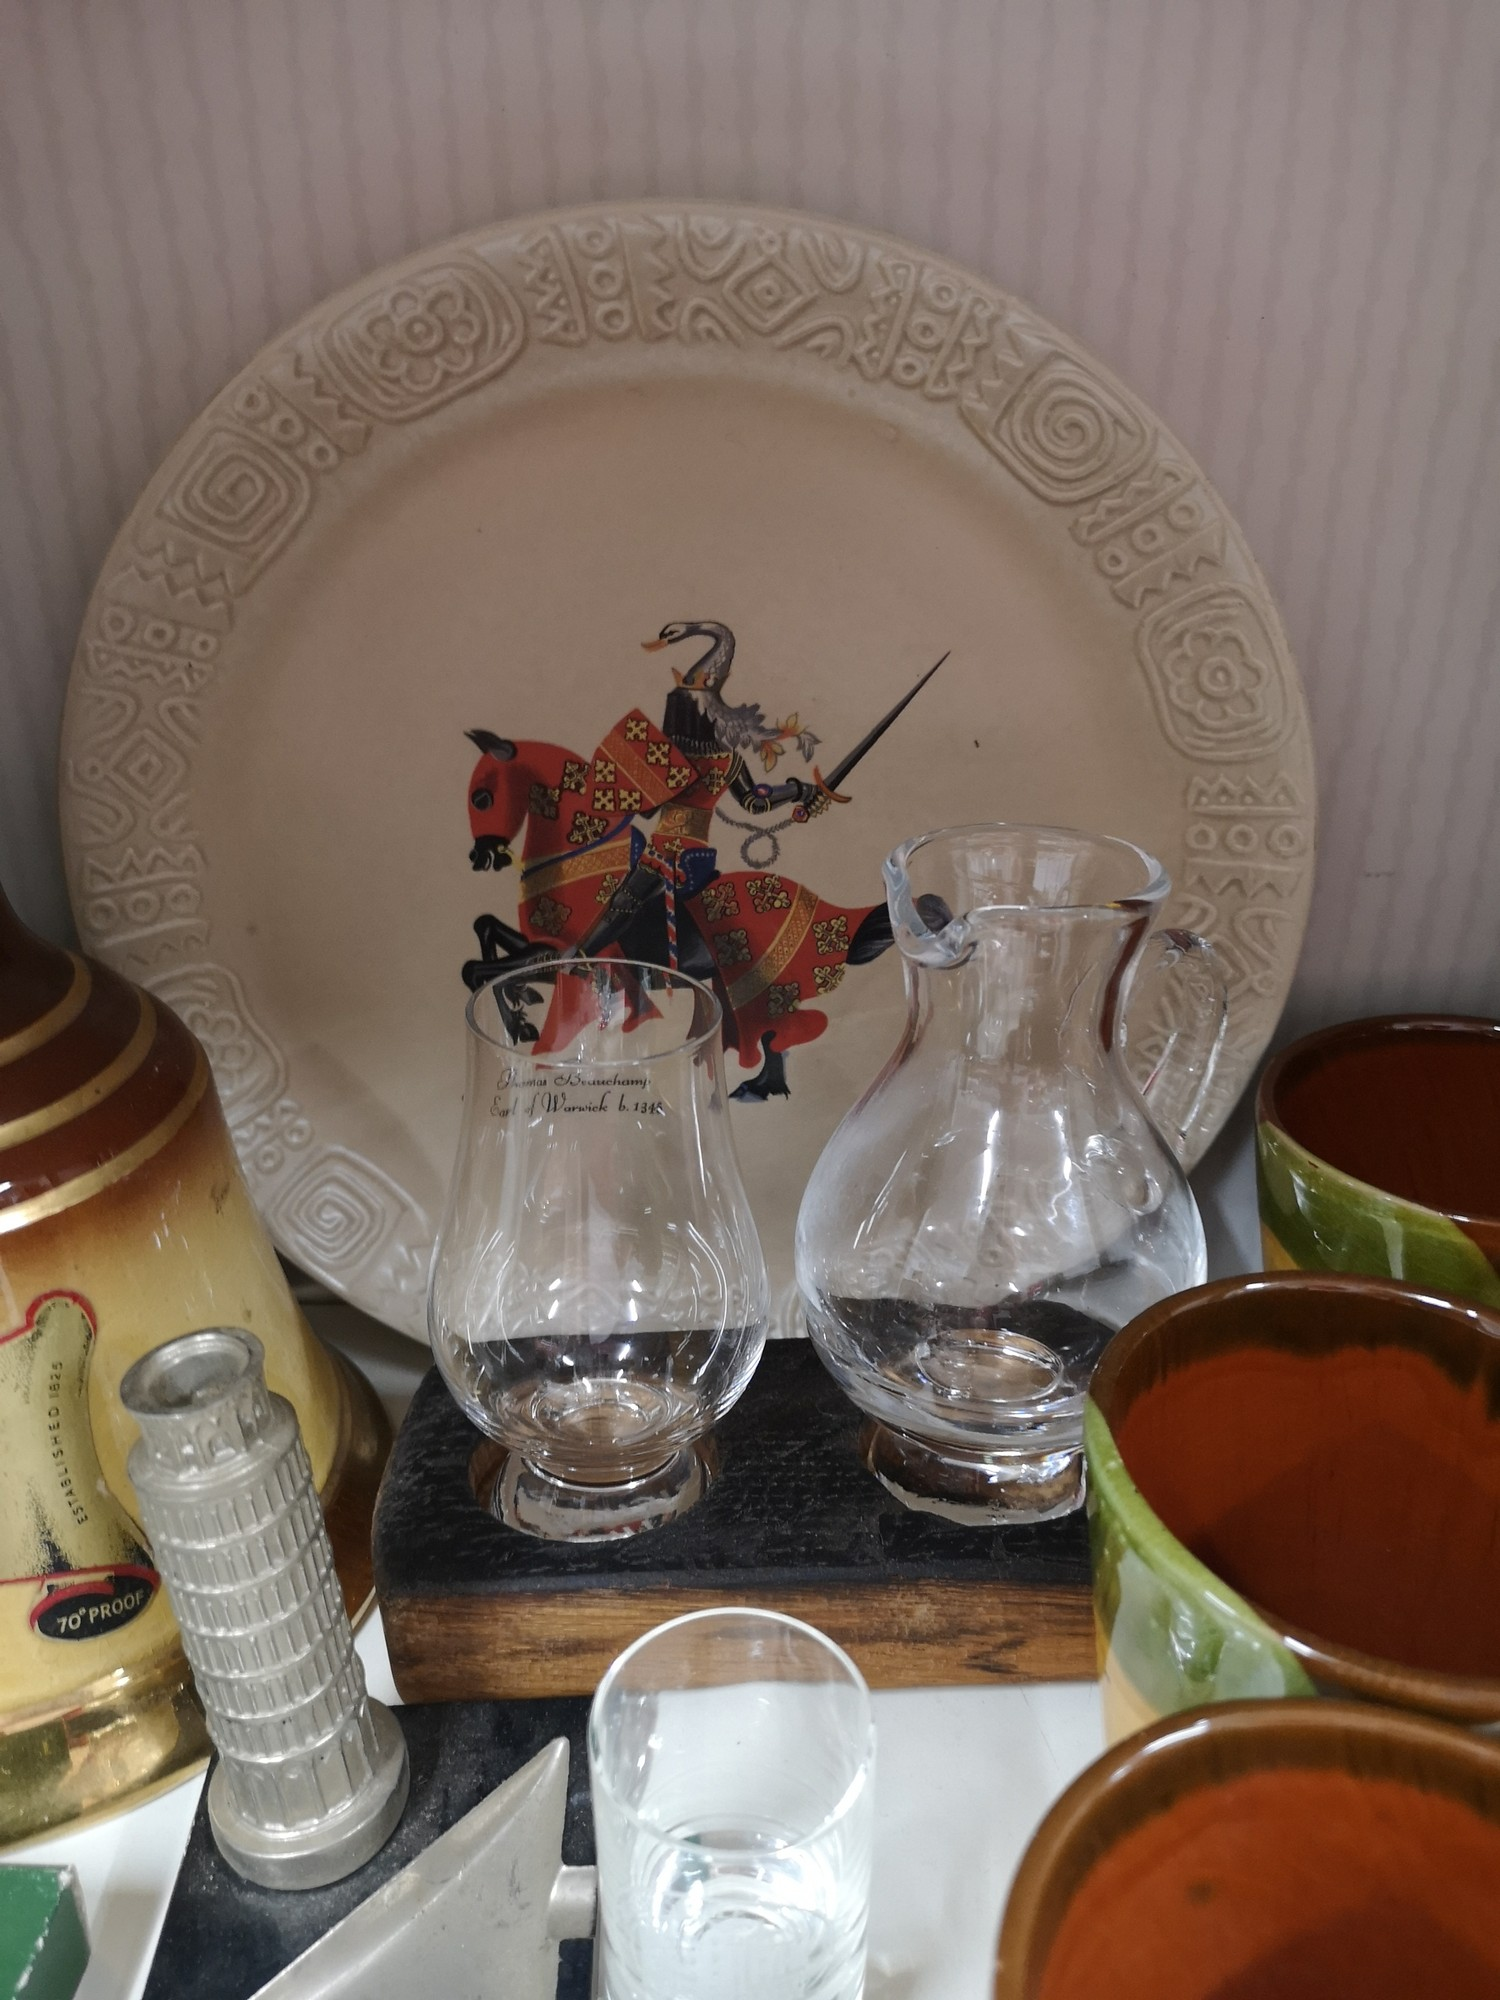 Shelf of collectables includes whisky jug and glass set on wooden plinth, gurgling jug etc. - Image 3 of 4